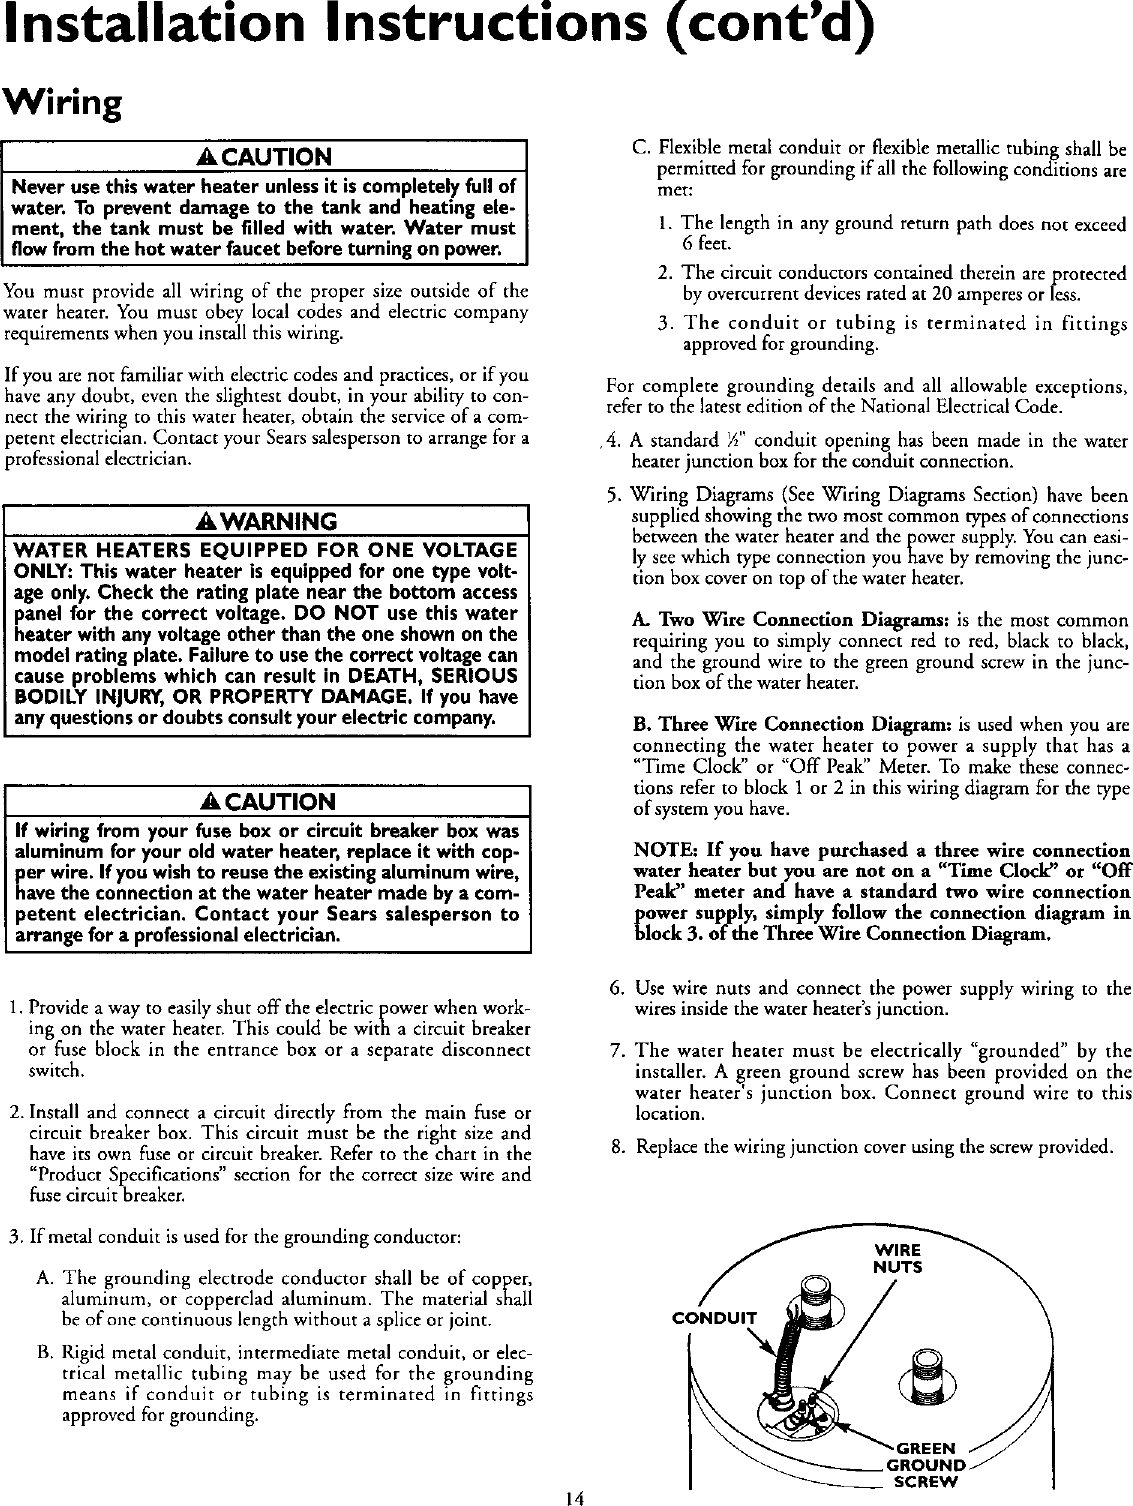 Kenmore Power Miser 153 316152 Users Manual on water pump switch wiring diagram, water heater parts diagram, water heater install diagram, suburban water heater wiring diagram, water heater thermostat wiring diagram, atwood water heater wiring diagram, water heater bypass valve, water sensor switch wiring diagram, rv hot water heater diagram, water heater wires, 240v baseboard heater wiring diagram,